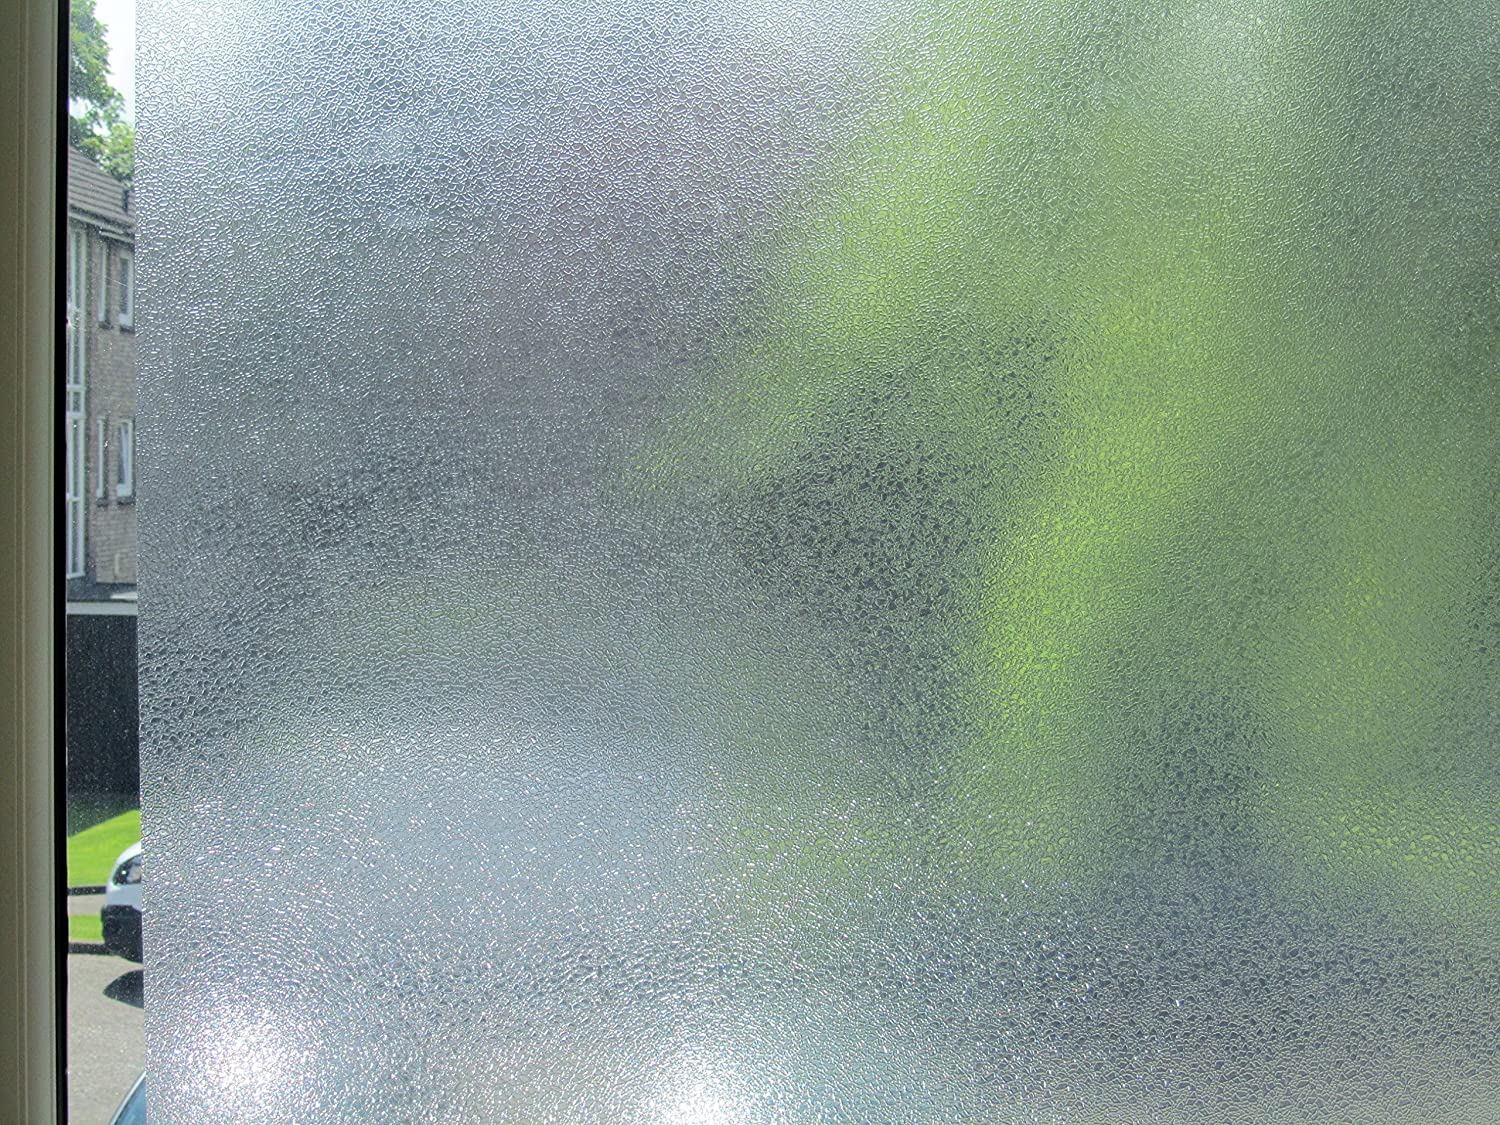 Embossed Premium Quality Frosted 3D Effect REUSABLE Decorative Window Privacy Static Film Bubbles Design Stained Glass Effect 1m x 90cm